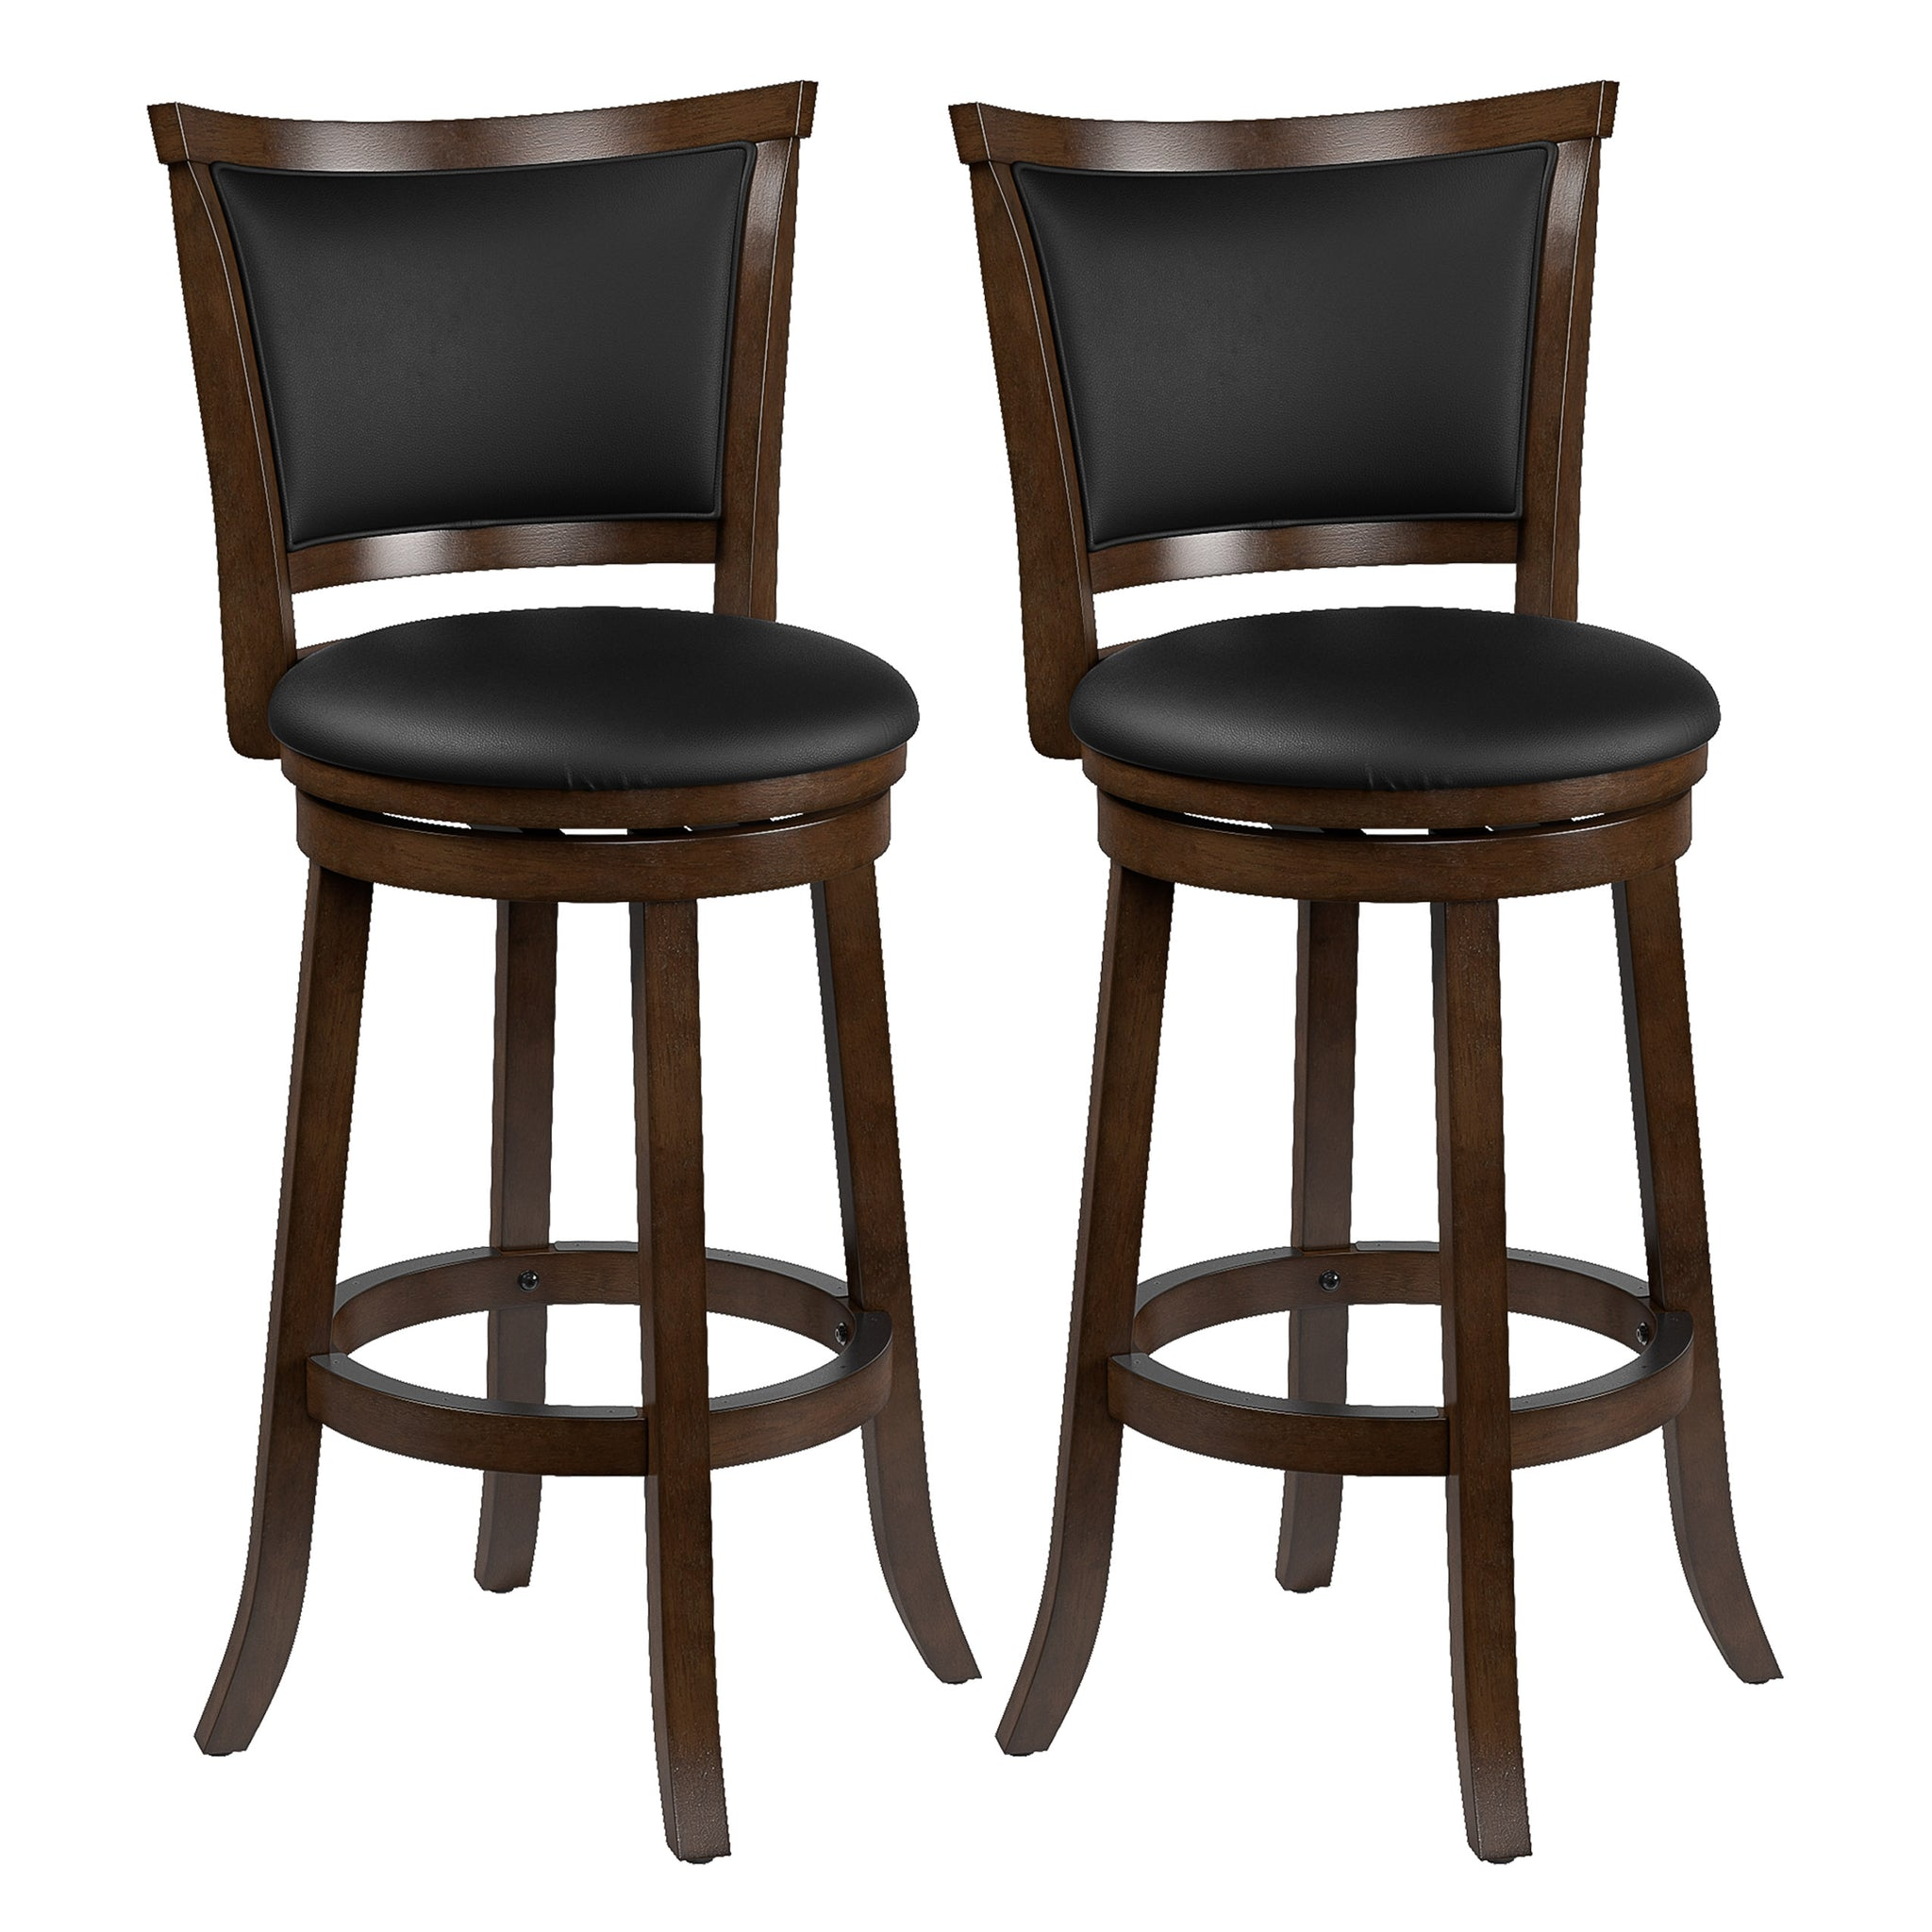 Picture of: Woodgrove Bar Height Wood Bar Stools With Pu Leather Seat And Backrest Corliving Furniture Us